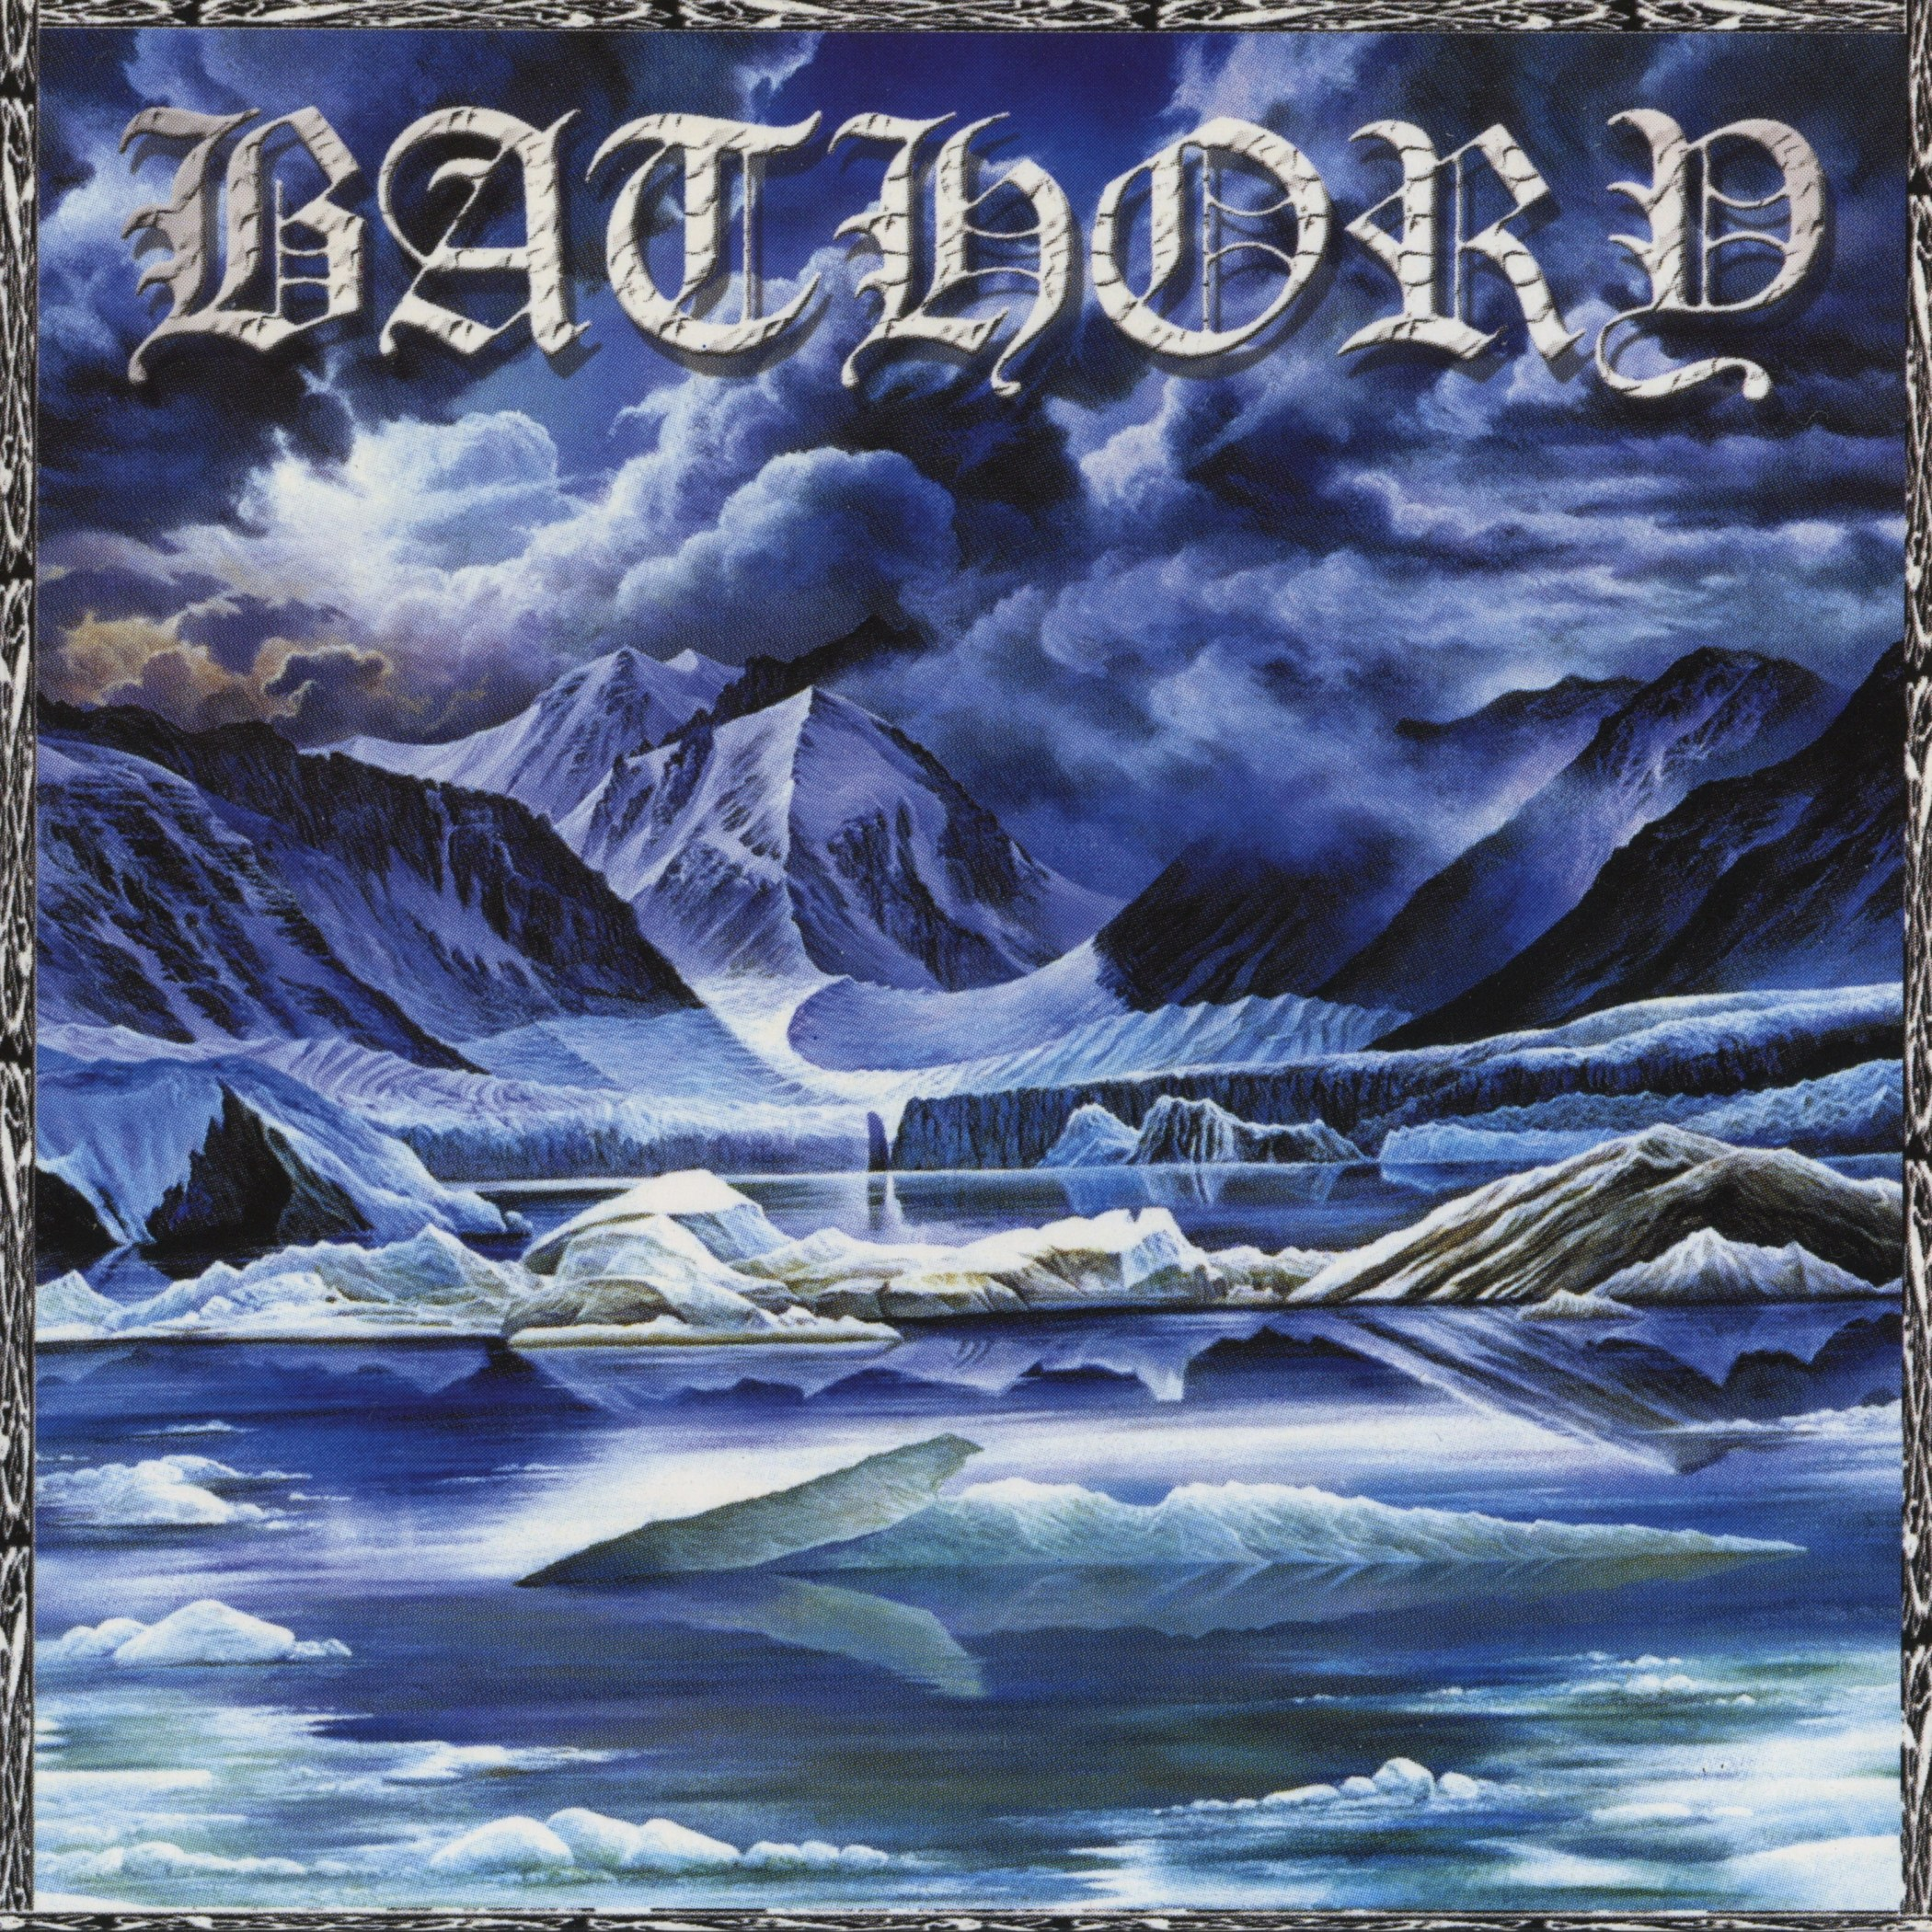 Review for Bathory - Nordland II